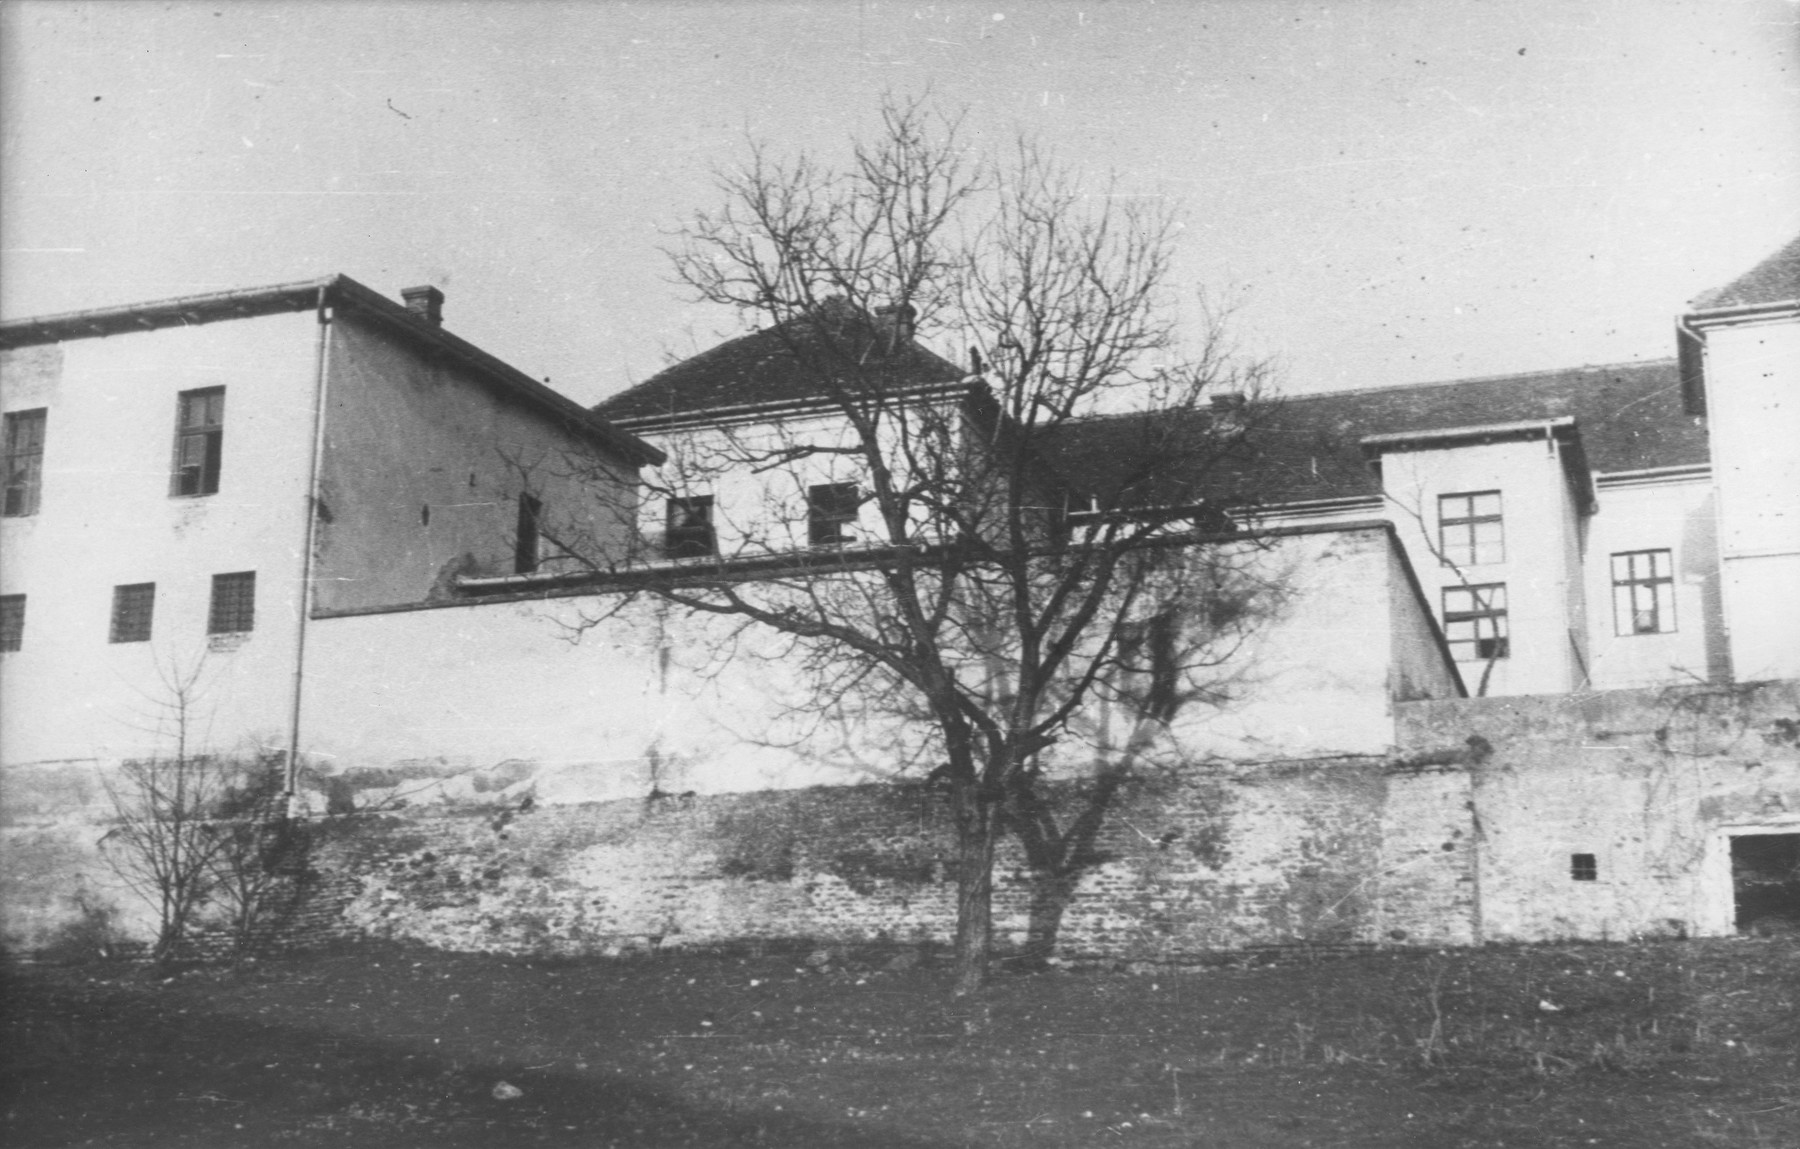 View of a prison in Irig, Serbia.